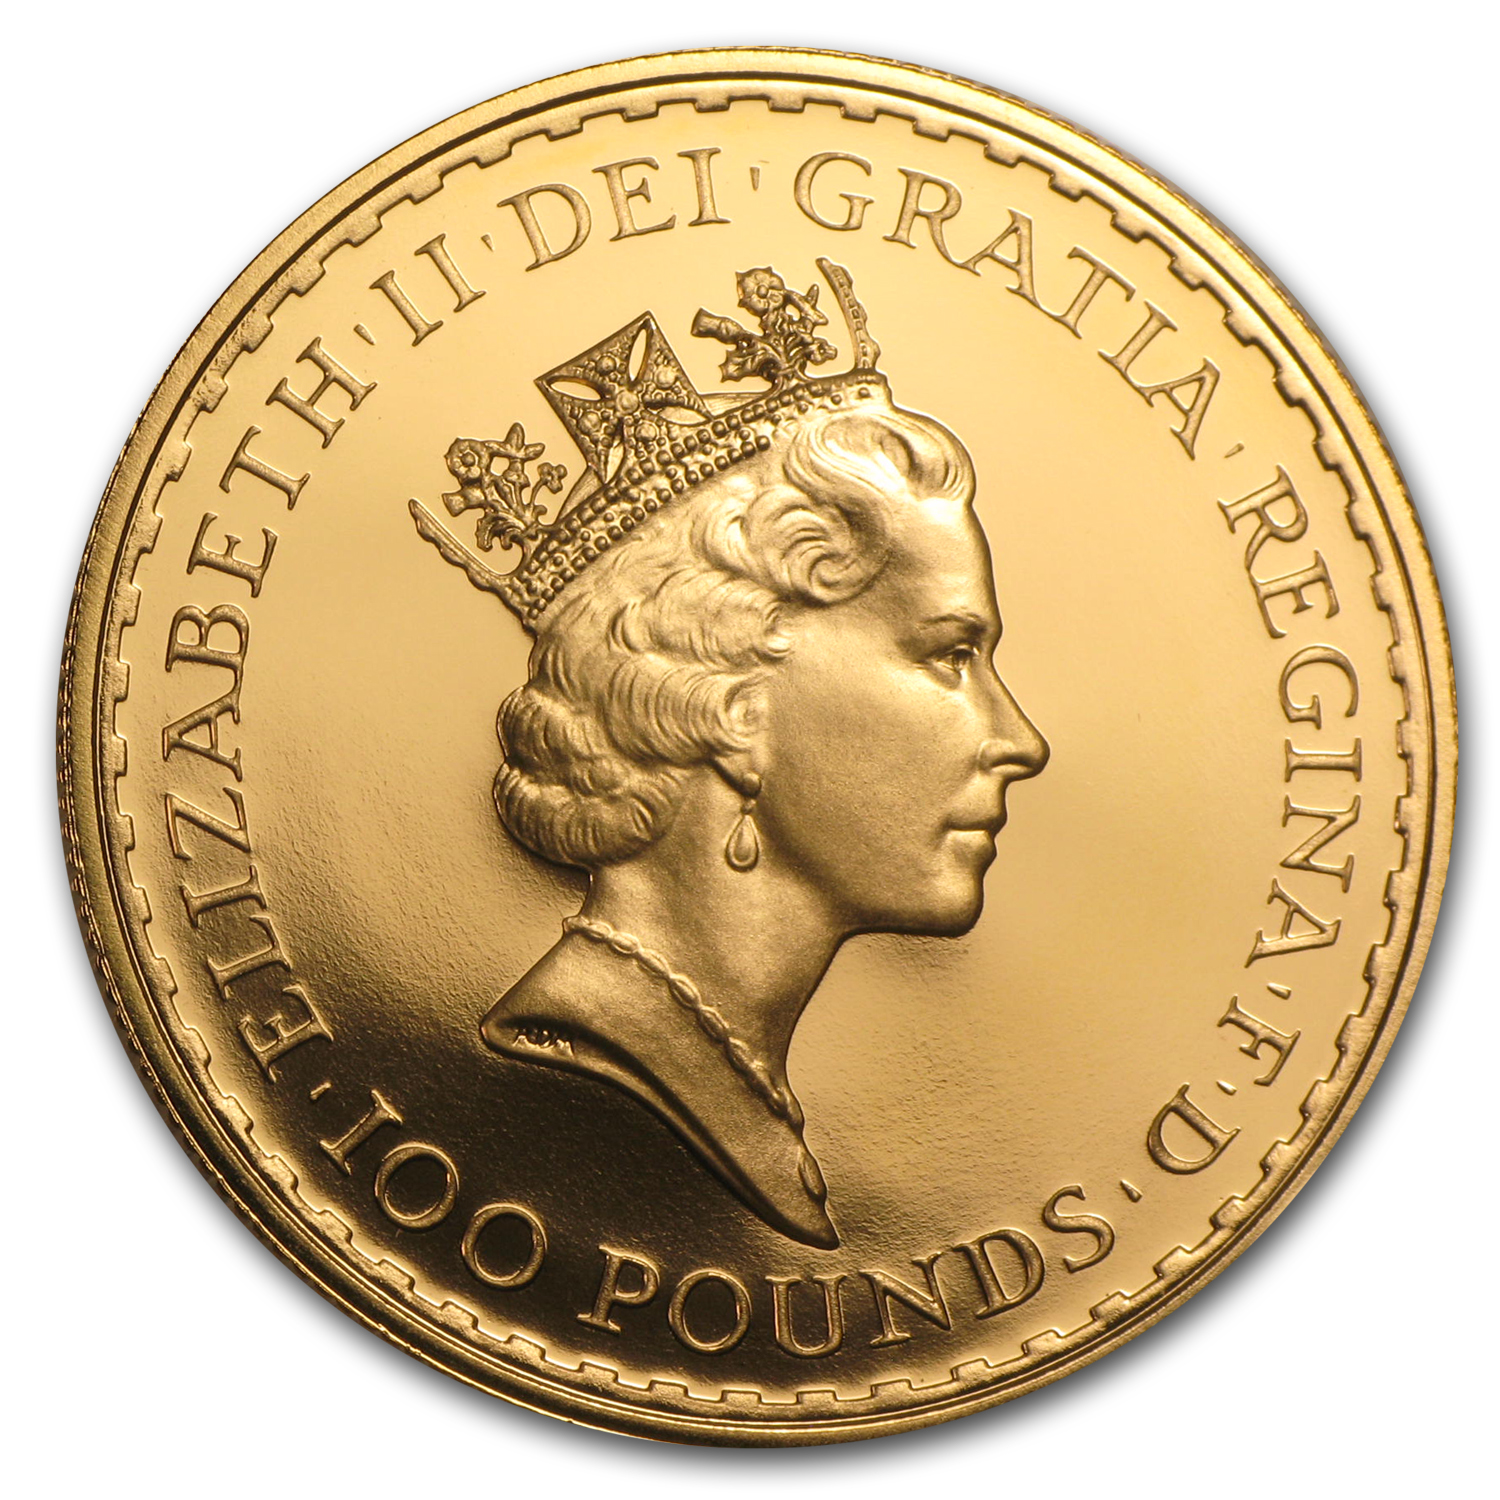 1989 Great Britain Proof Gold 1 oz Britannia